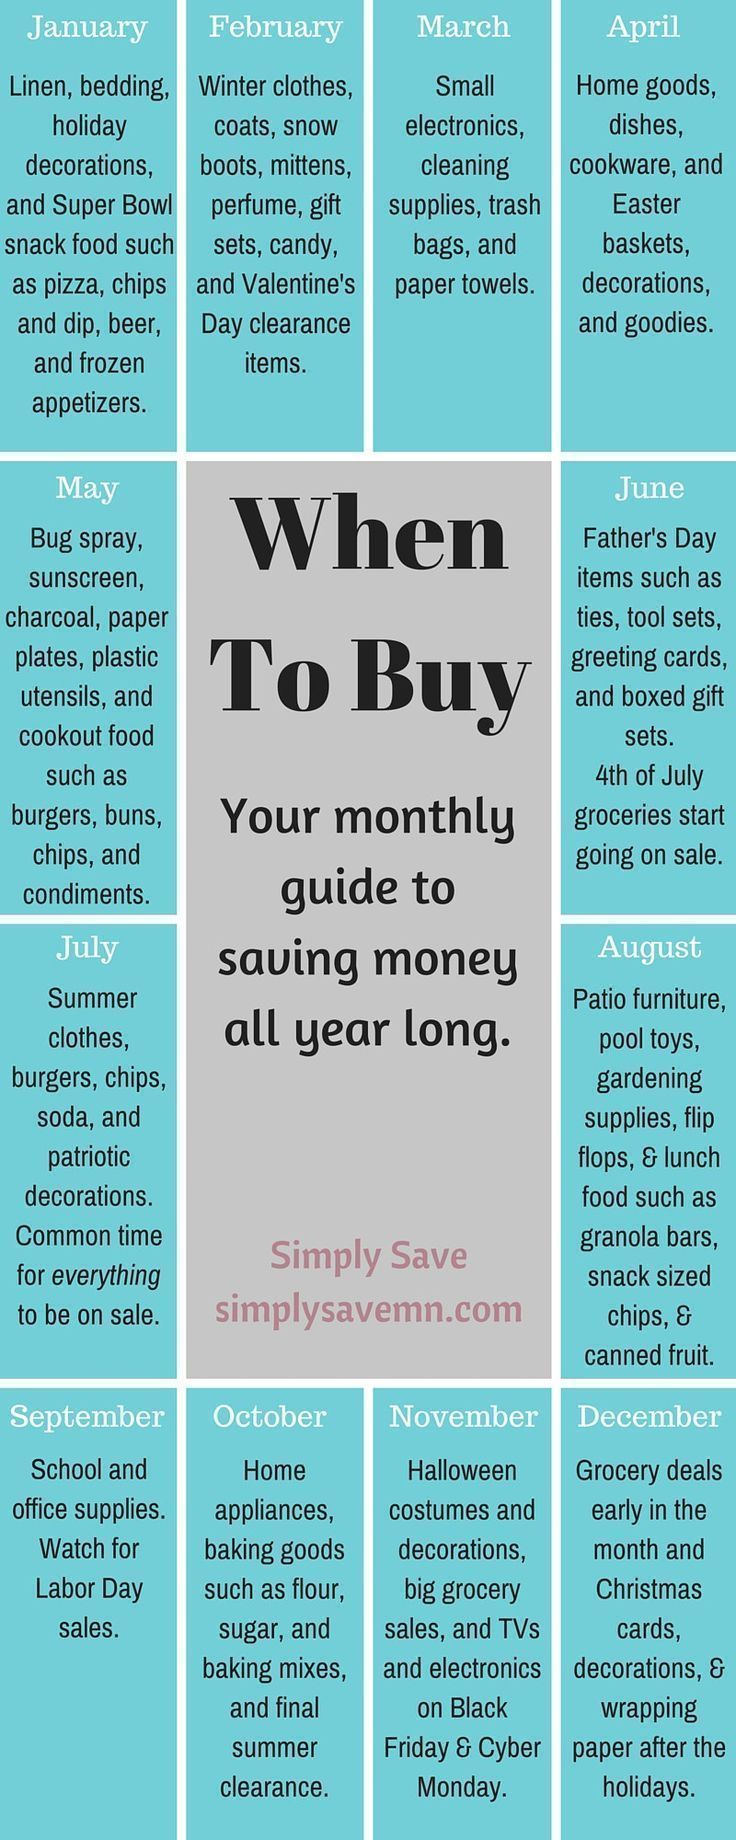 When to buy a monthly guide saving money life hacks and frugal when to buy guide monthly guide ho saving money all year long appliances linens clothing kristyandbryce Image collections